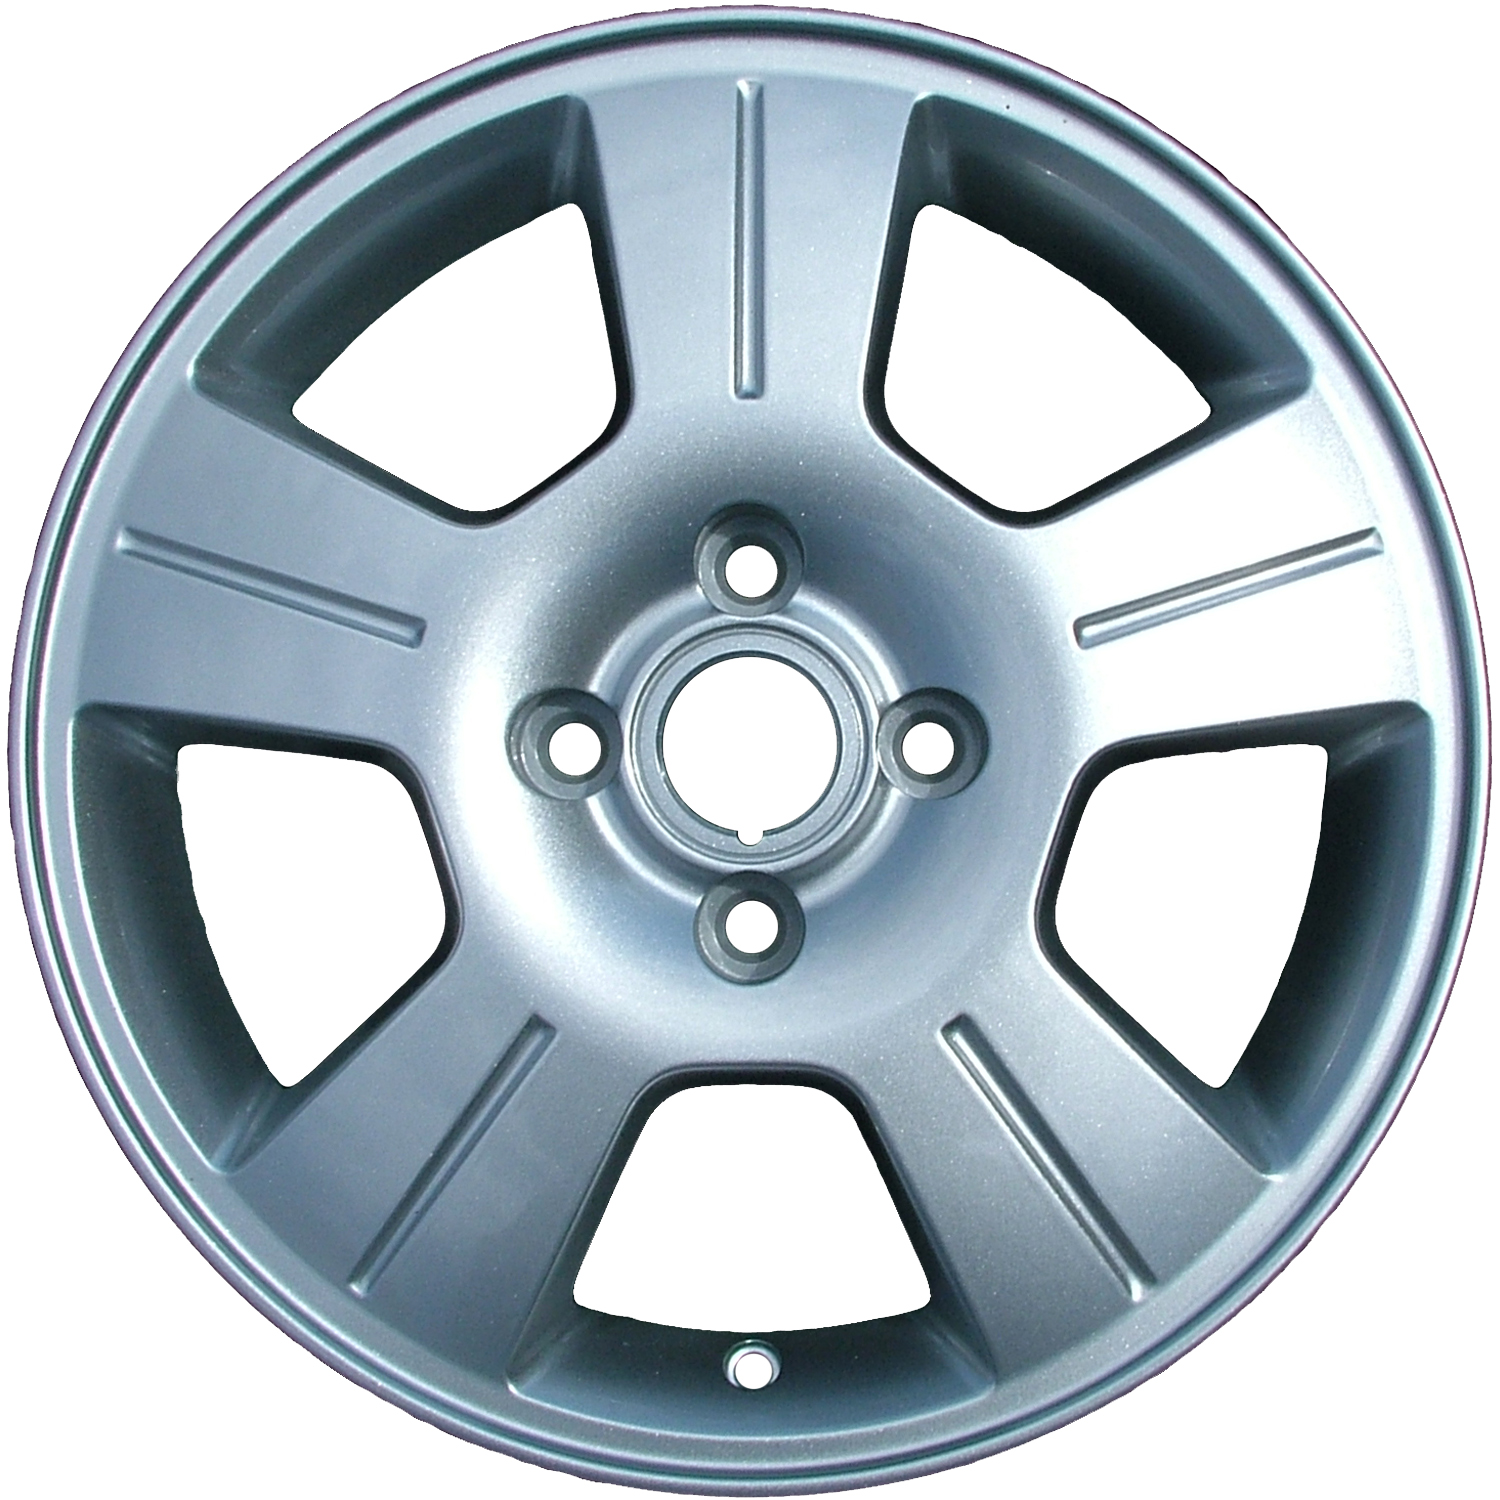 "Set of 4 Genuine 16"" Factory OEM Alloy Wheel,Rim Fits 2003-2007 Ford Focus"